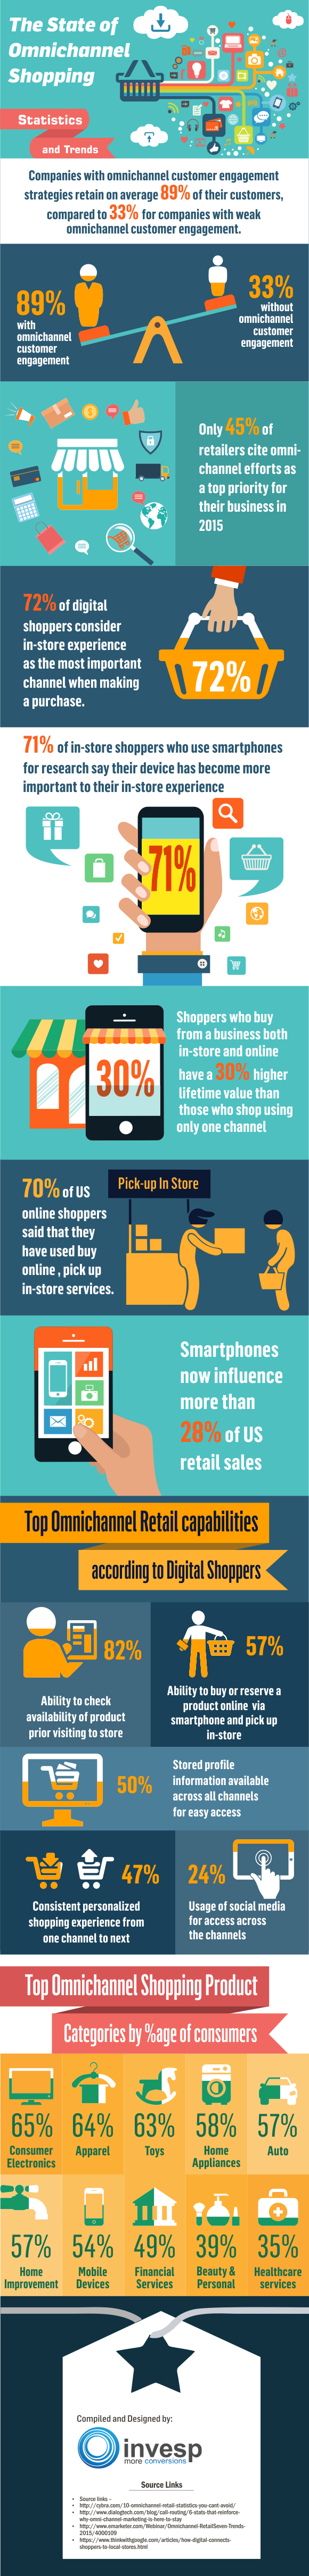 omnichannel-shopping-2.png-2